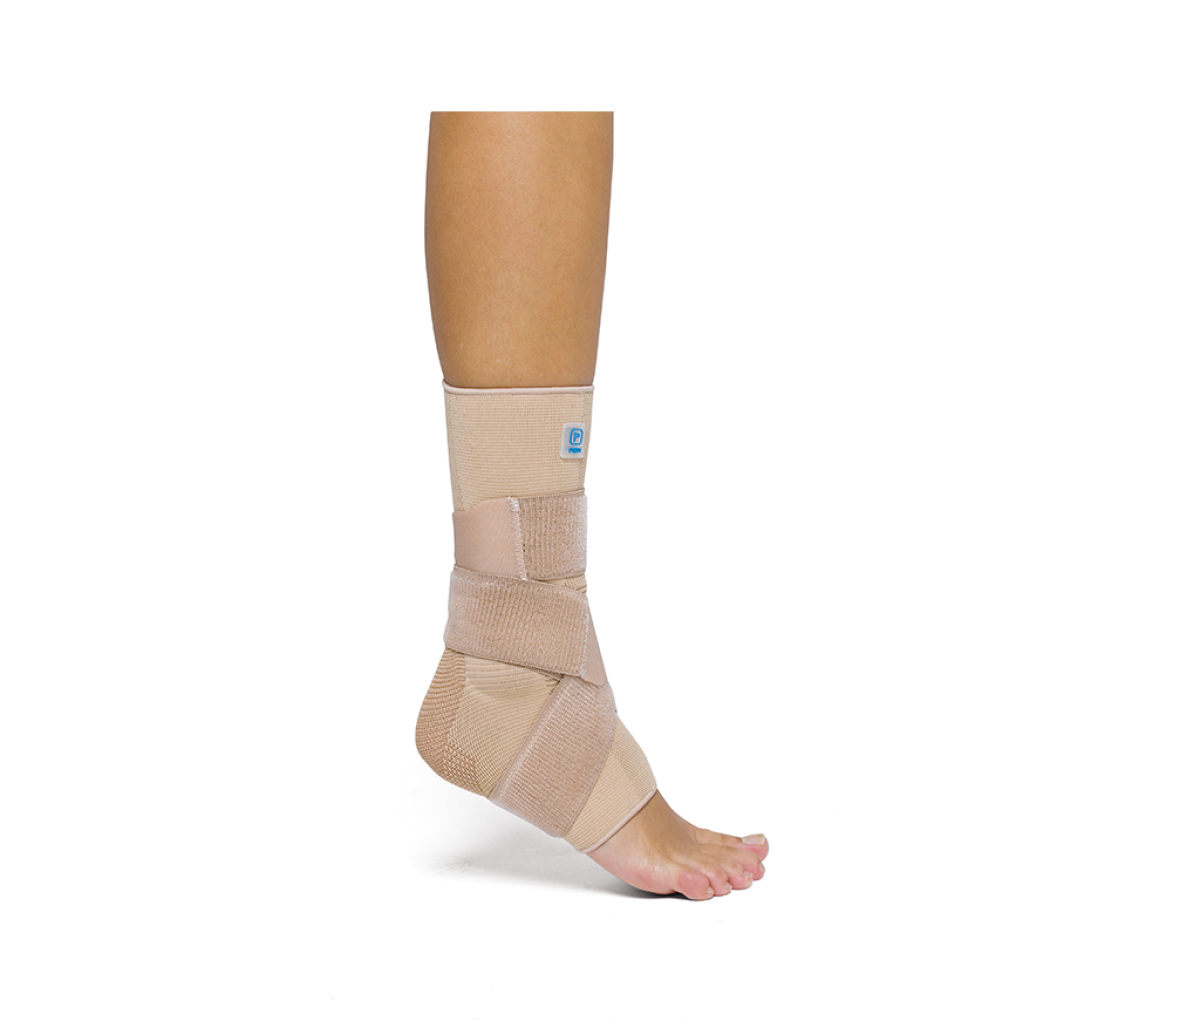 AQTIVO ANKLE BRACE WITH FIGURE OF 8 STRAP - S P706BG